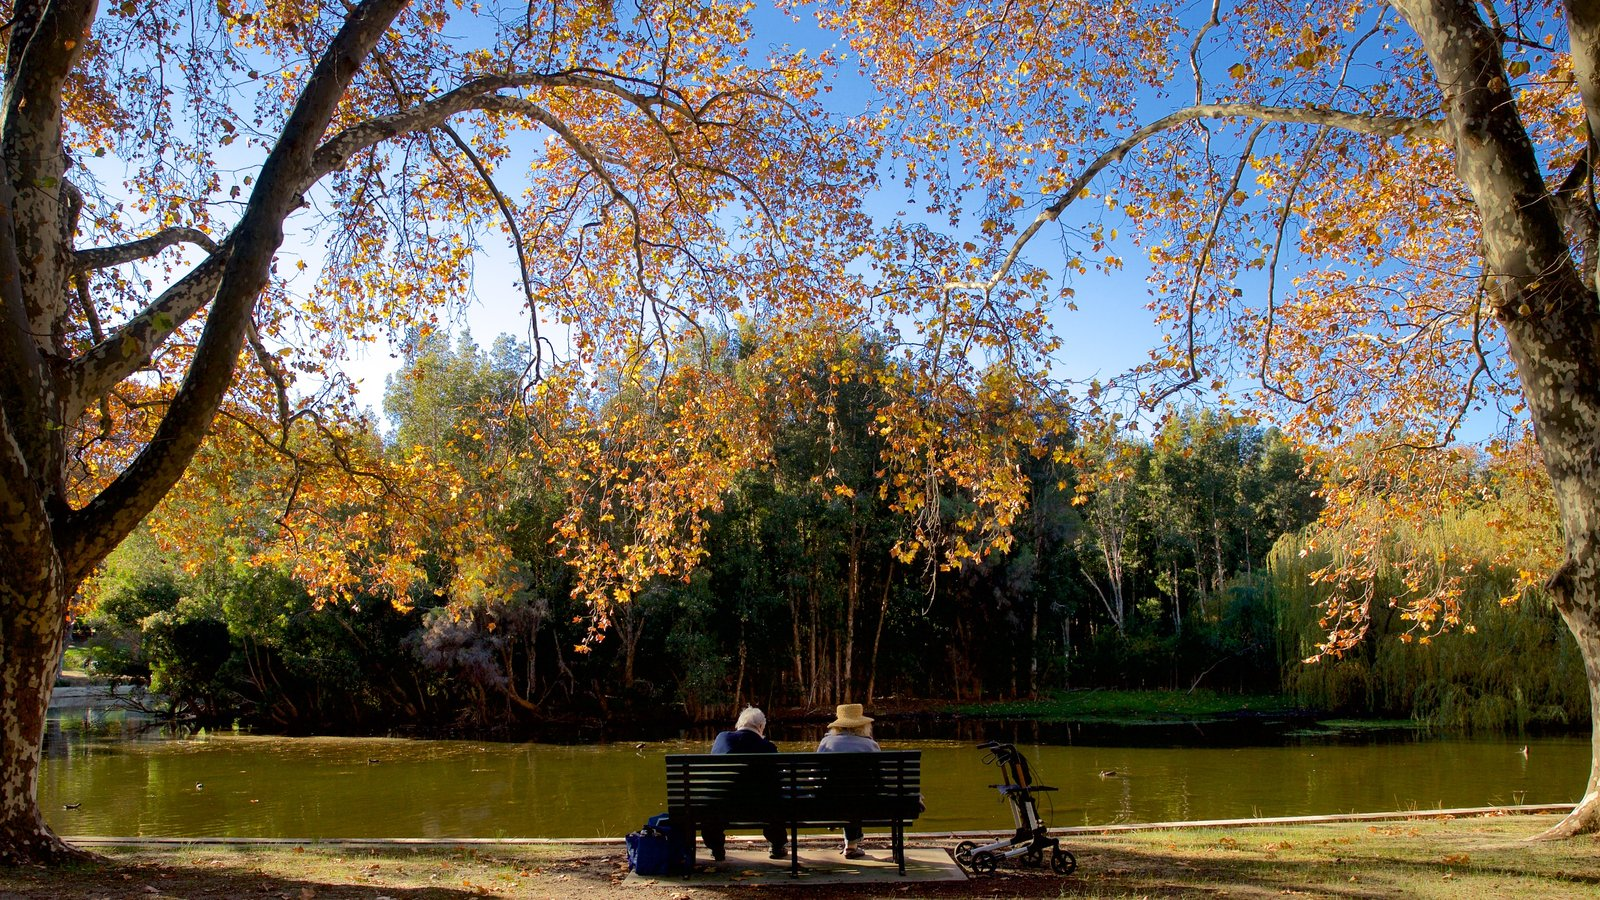 Hyde Park showing a park, fall colors and a lake or waterhole